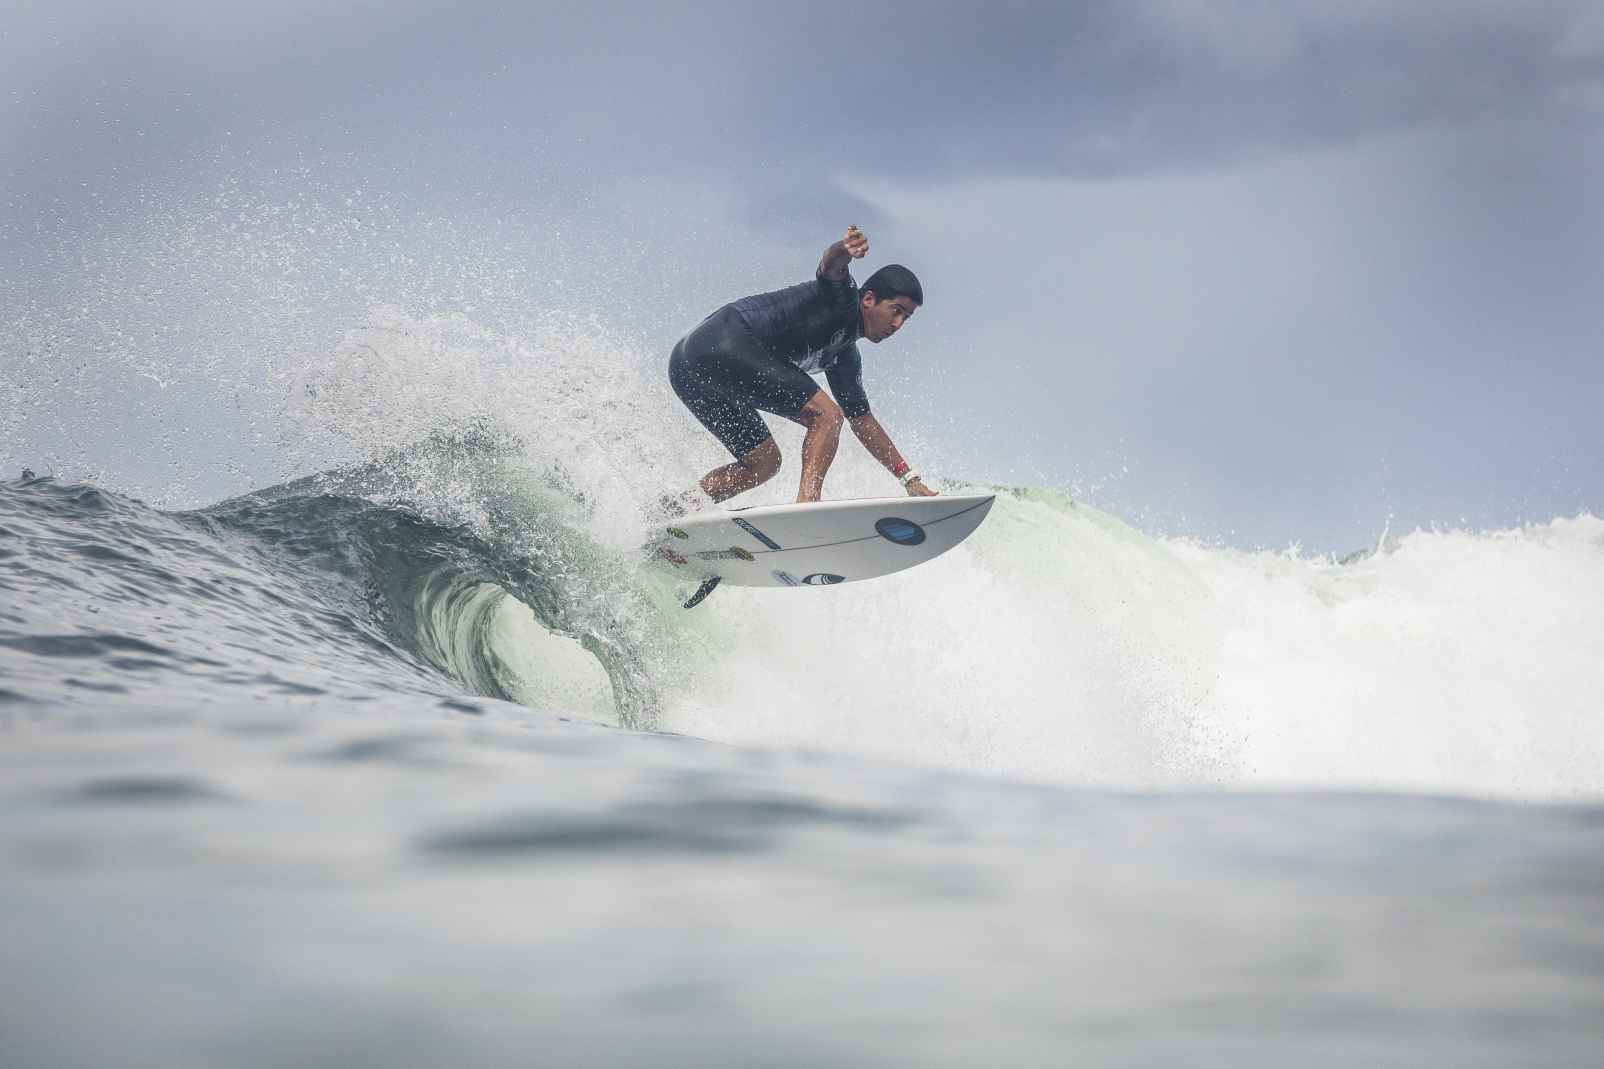 wsl rip curl newcastle cup Miguel Pupo7425Newcastle21Meirs